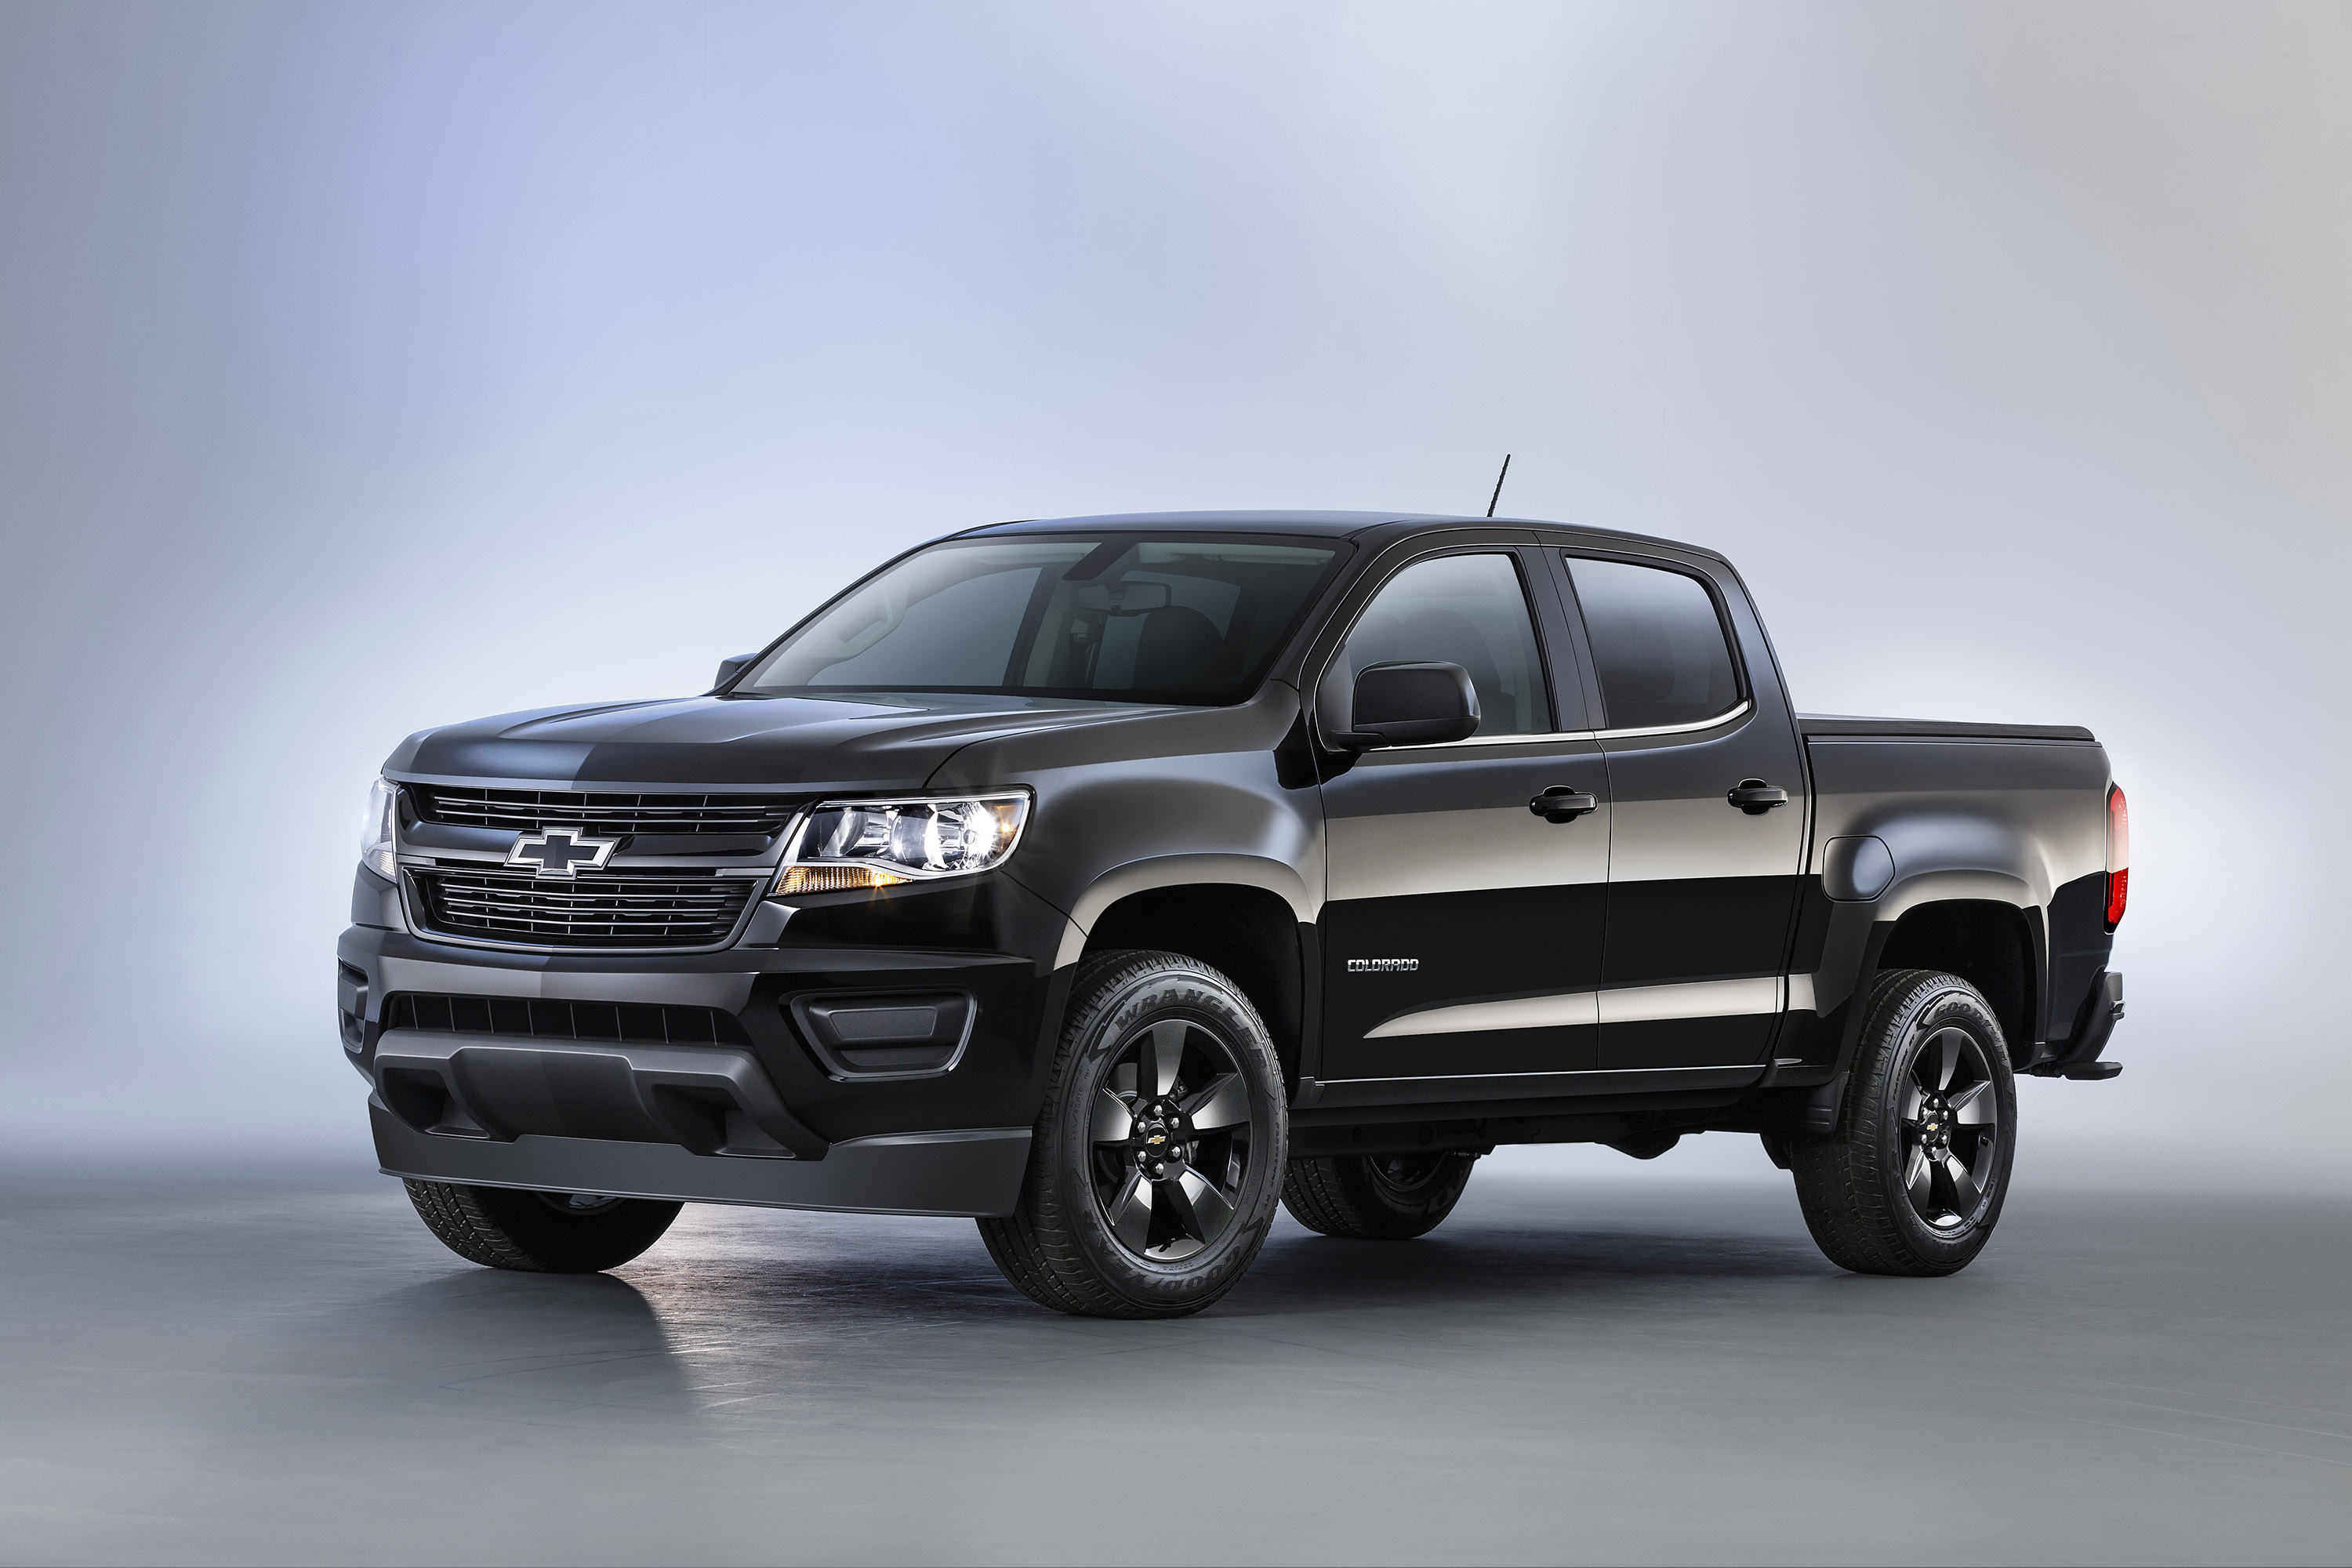 Meet The New Chevy Colorado S Midnight And Trail Boss Editions